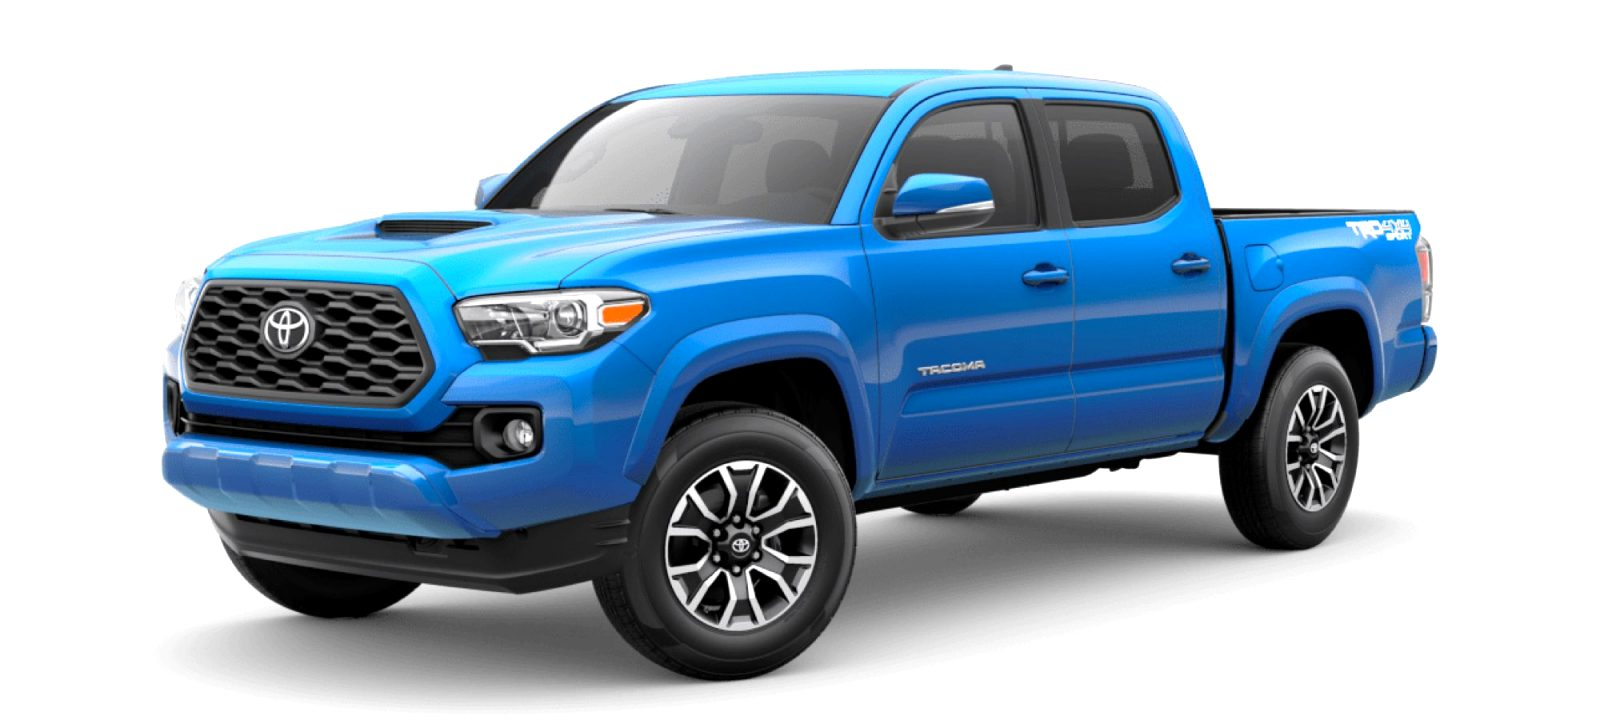 2021 toyota tacoma Picture